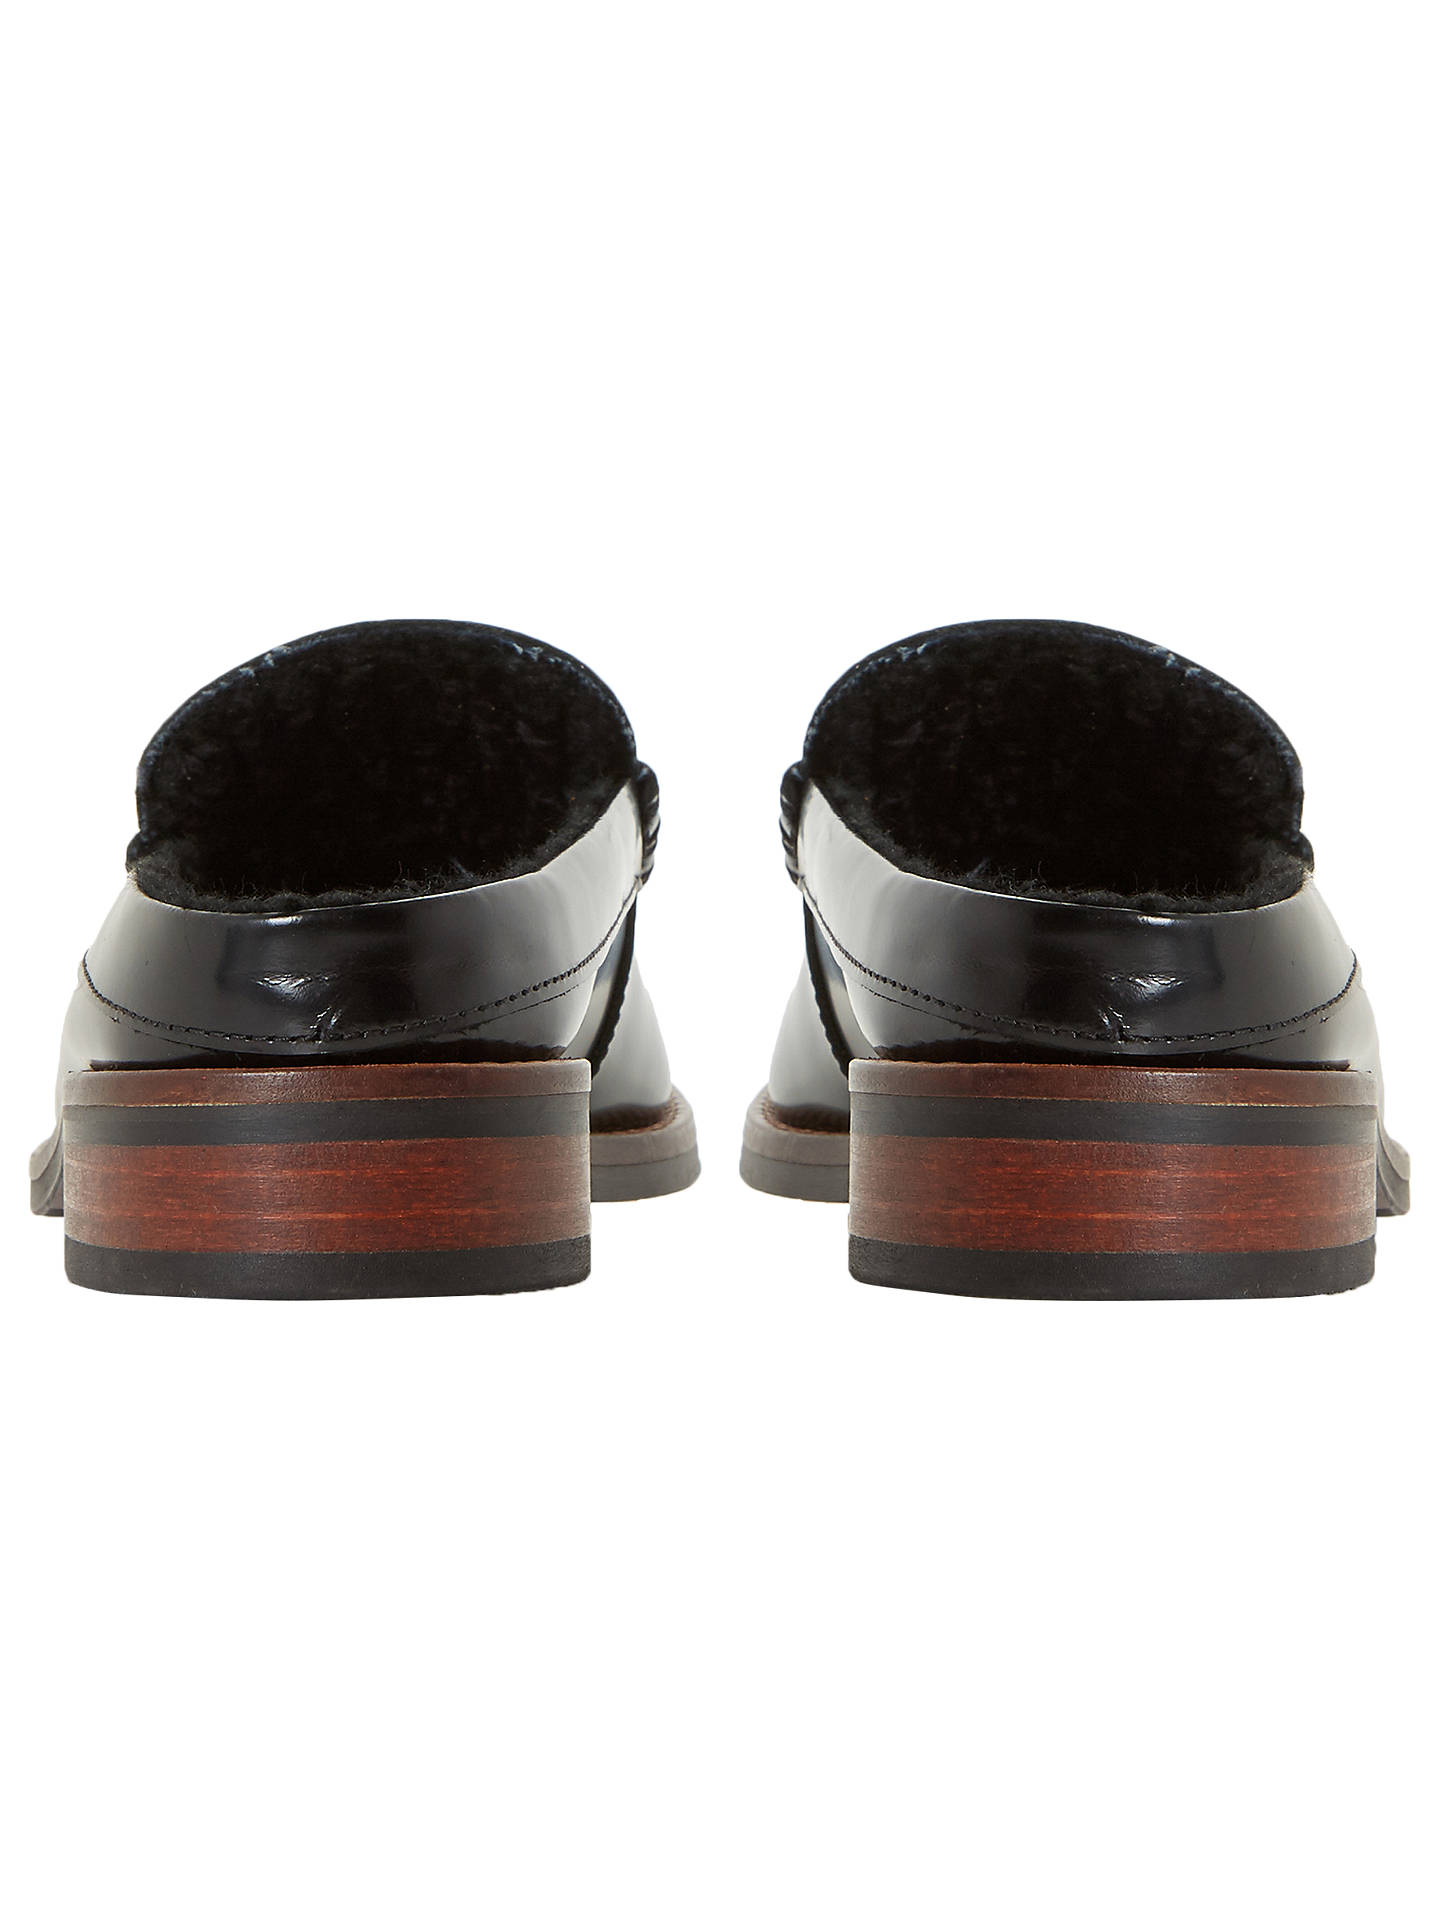 Buy Bertie Greenwood Faux Fur Lined Mule Loafers, Black, 3 Online at johnlewis.com